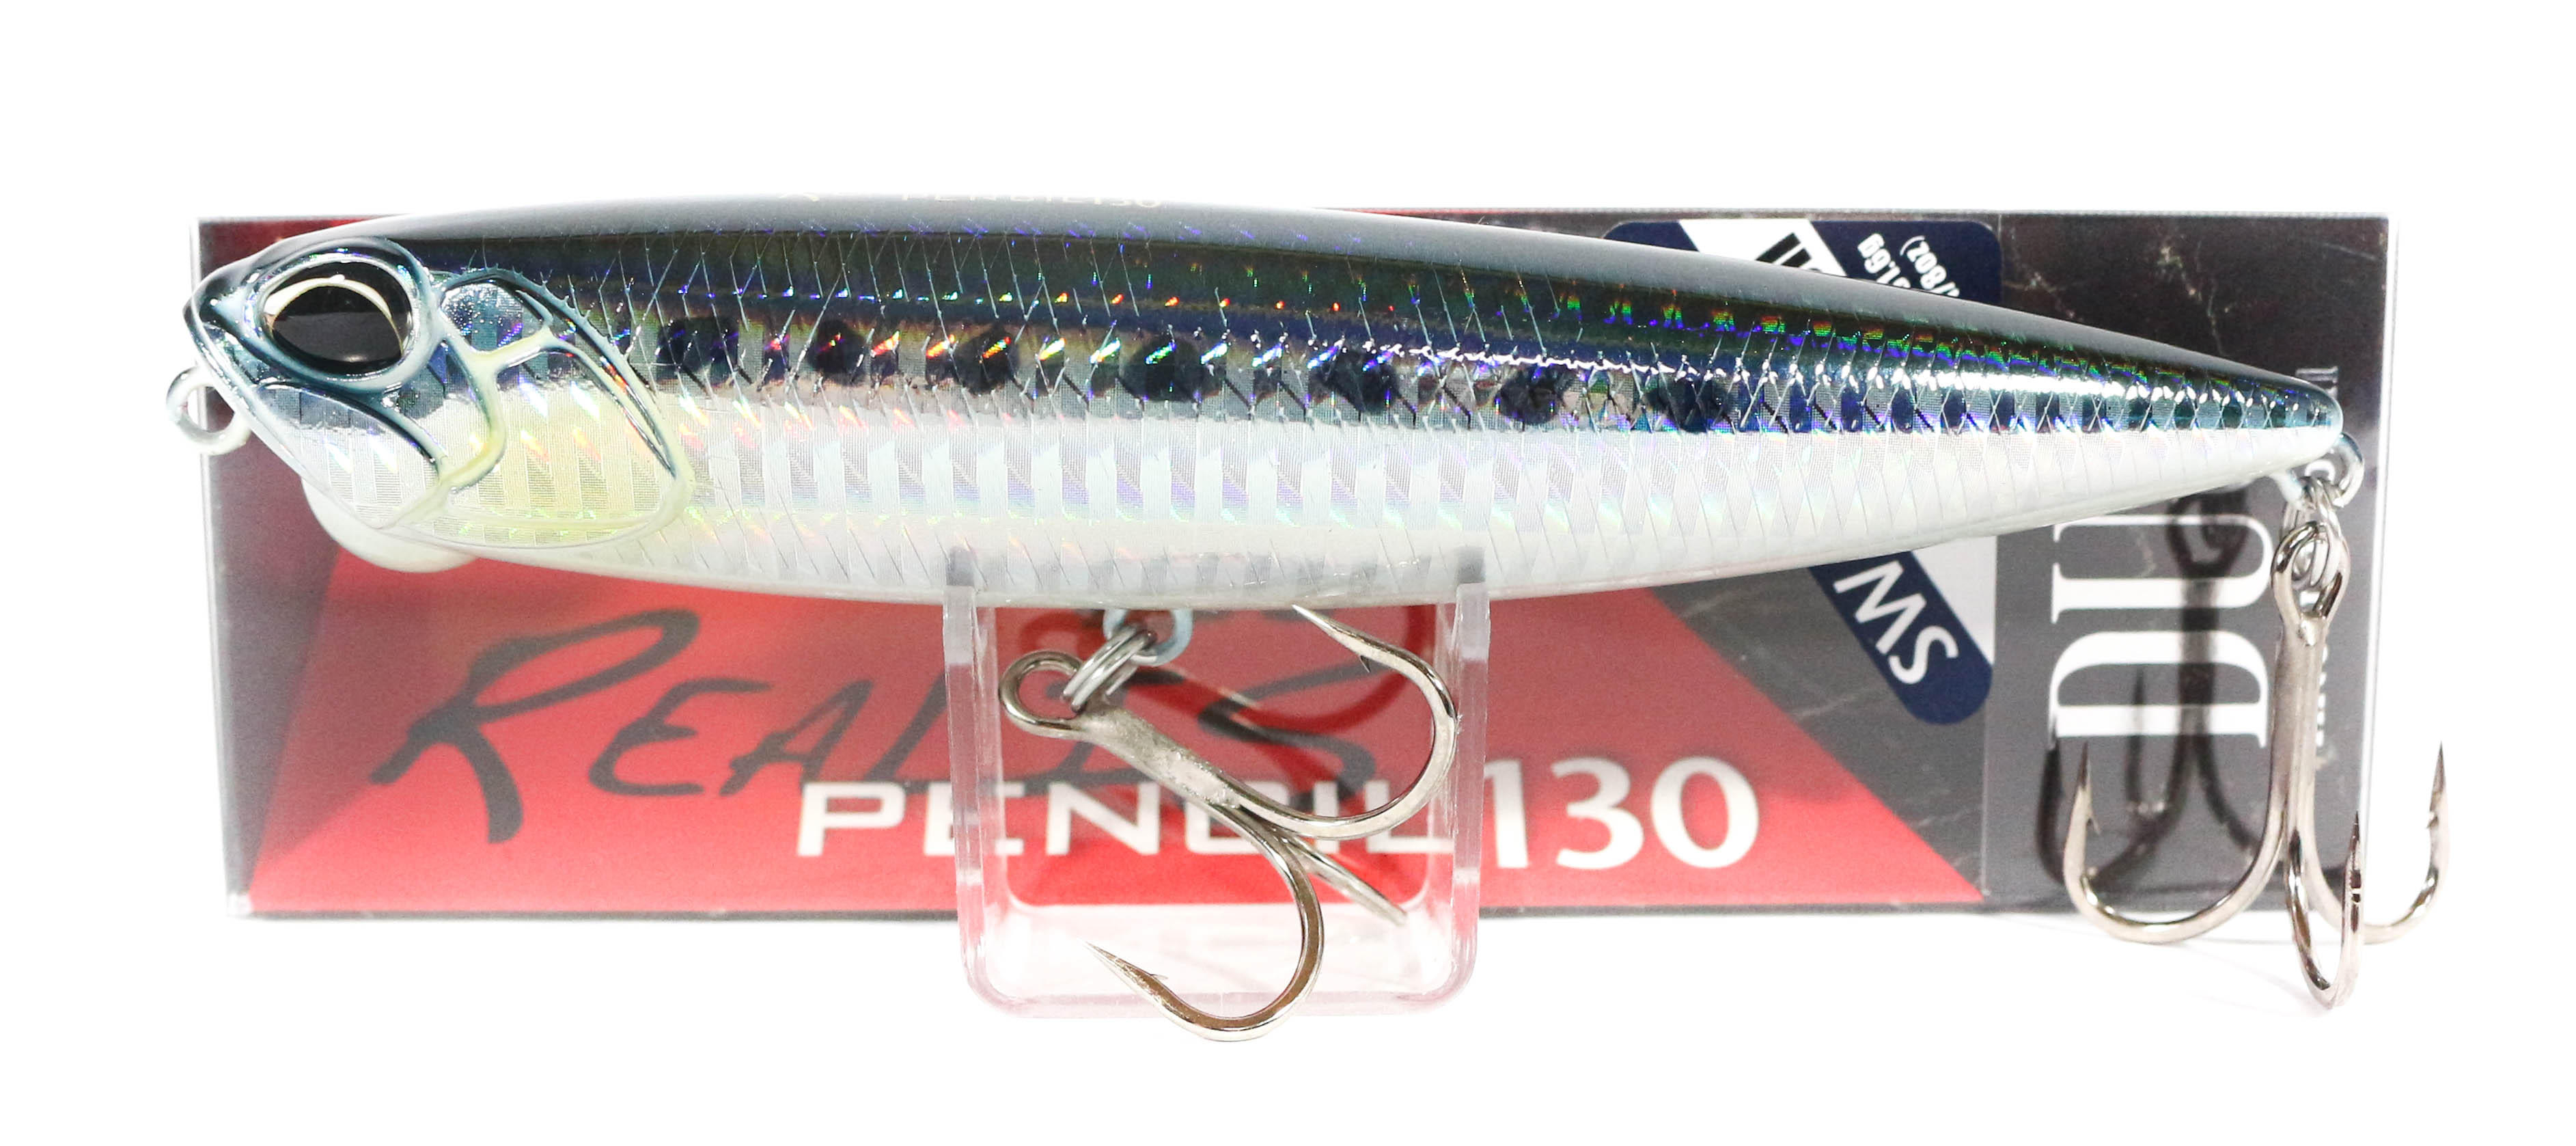 Duo Realis Pencil 130 SW Topwater Floating Lure AHA0011 (3778)